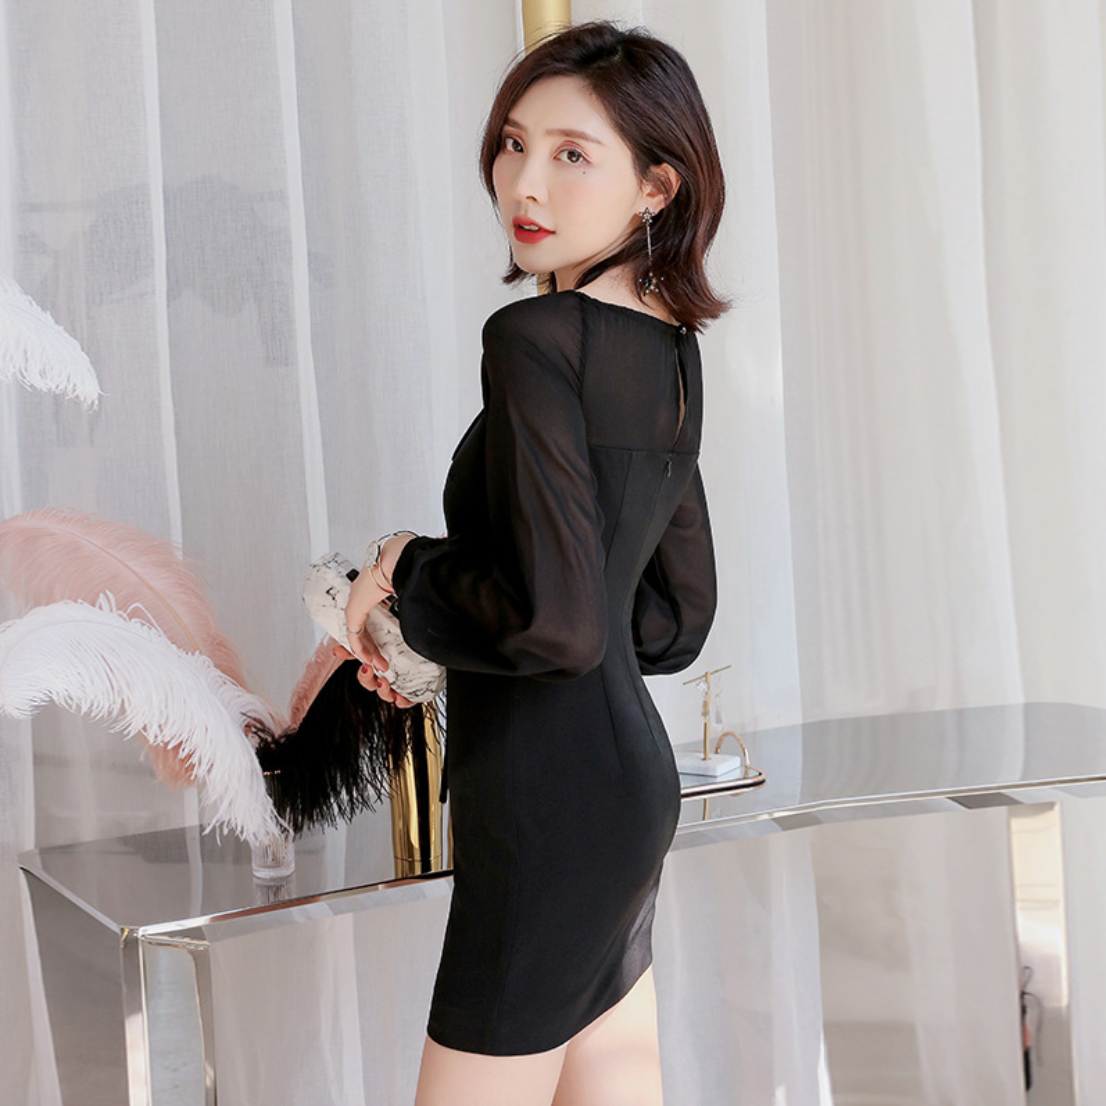 Sexy Black Long Sleeves Round Neckline Strap Detailing Dress